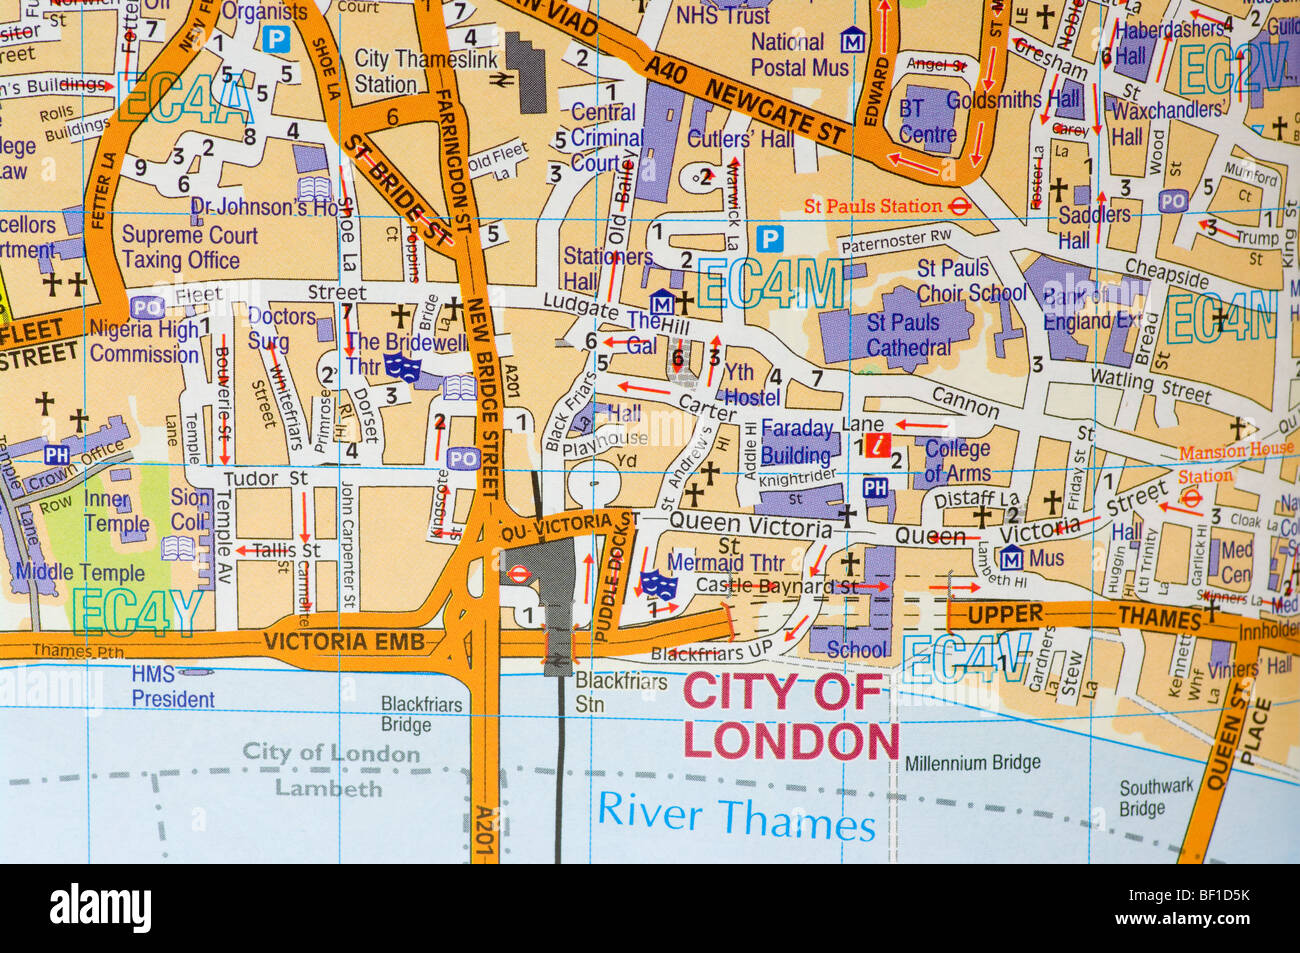 Street Road Map Of The City Of London uk Stock Photo: 26462511   Alamy